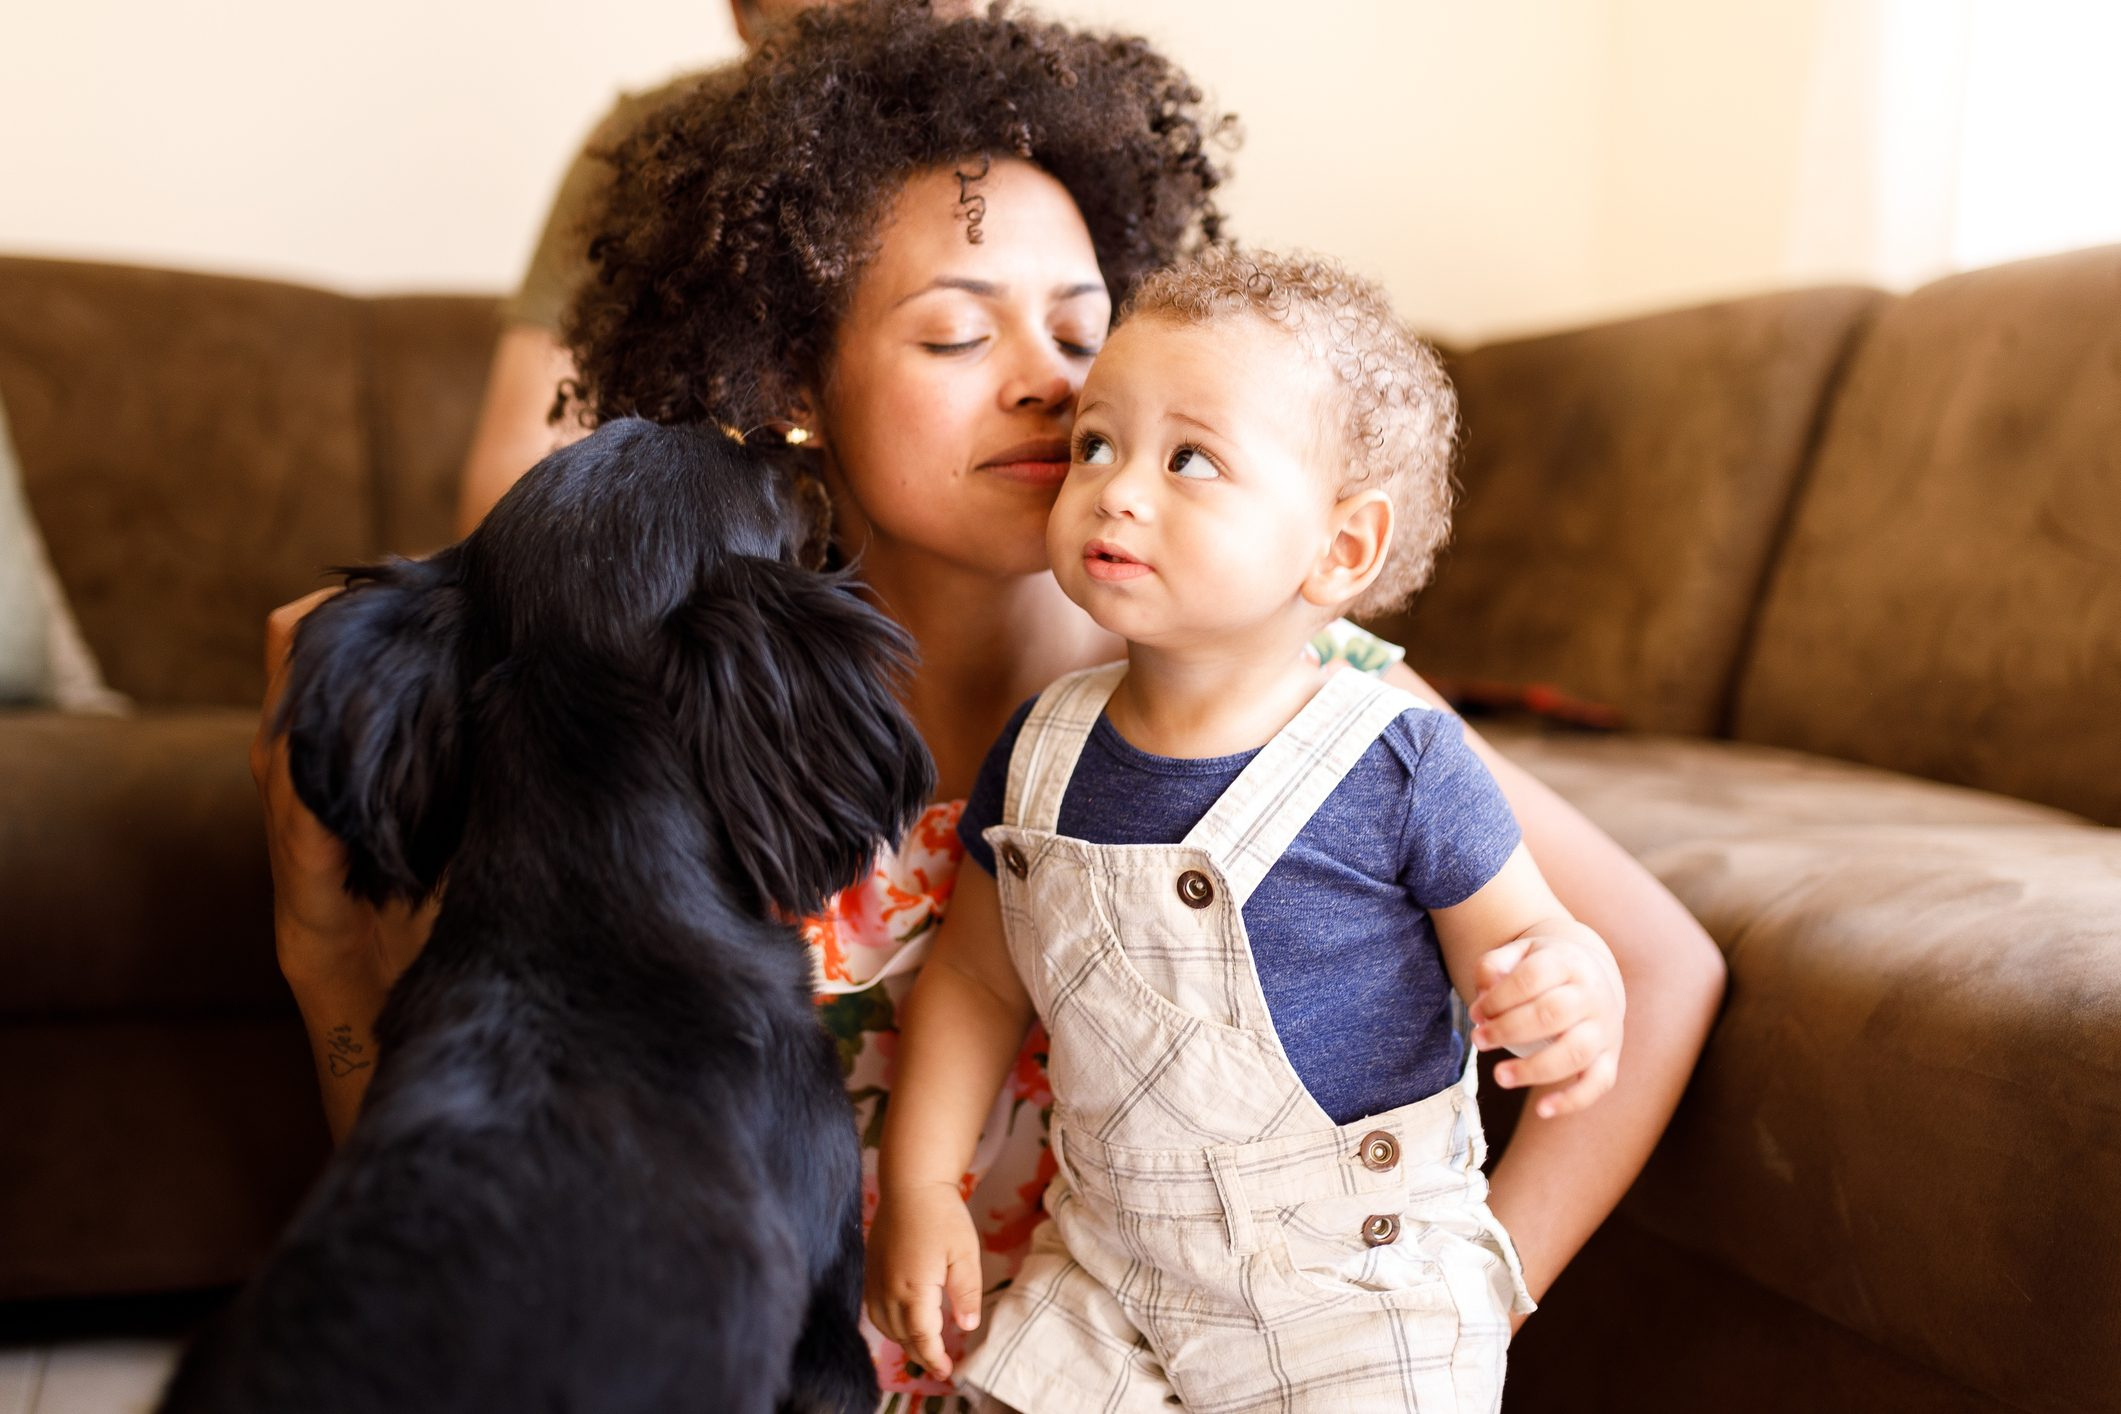 Woman, baby and dog showing affection